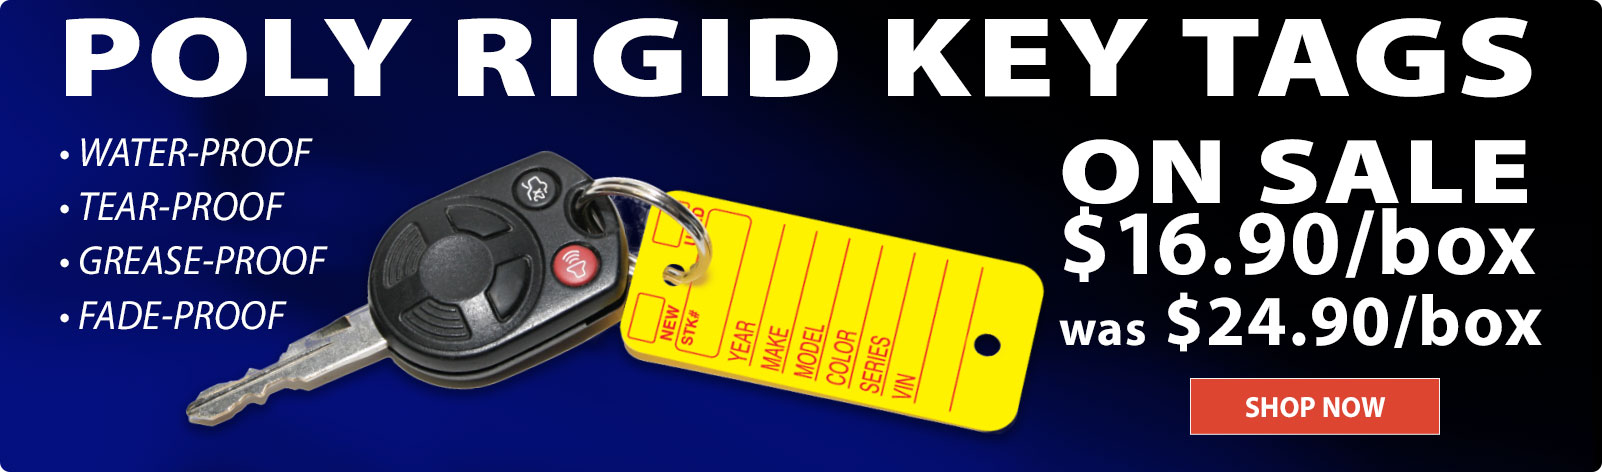 Limited Time Only! Poly Rigid Key Tags ON SALE $16.90 per box!